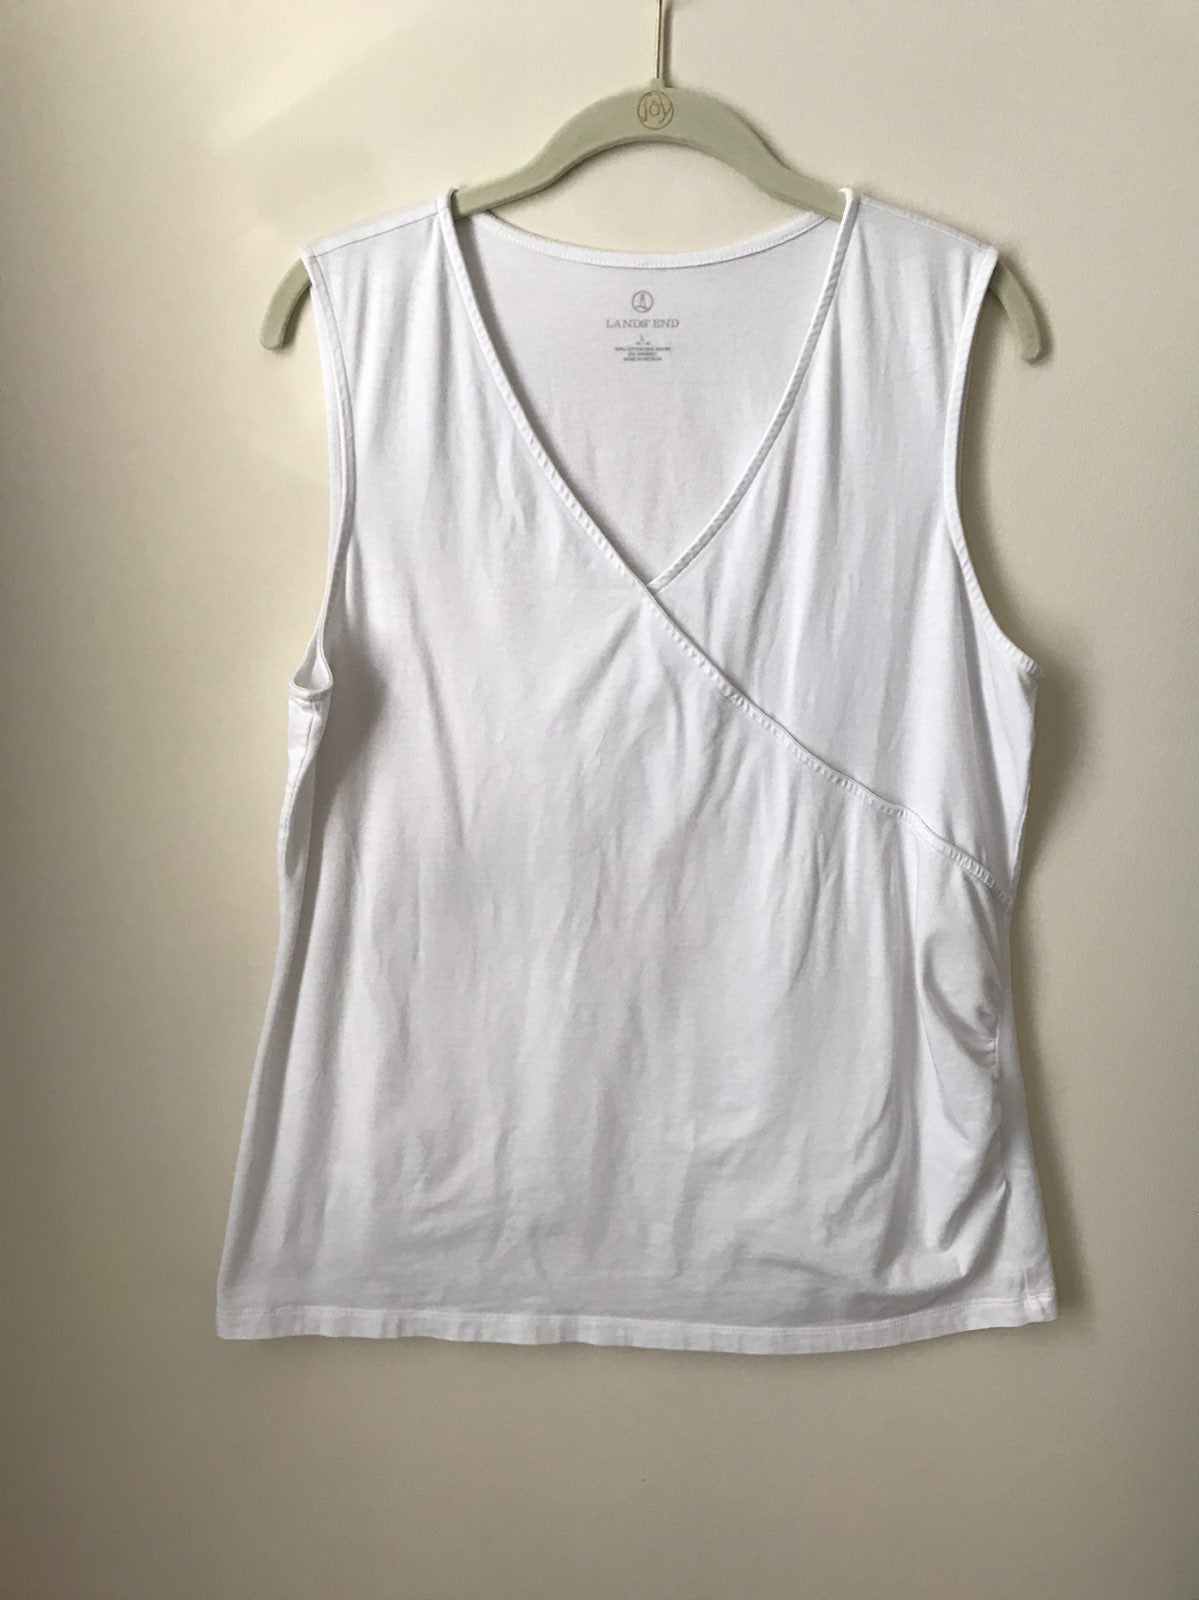 Lands End Sleeveless White Top